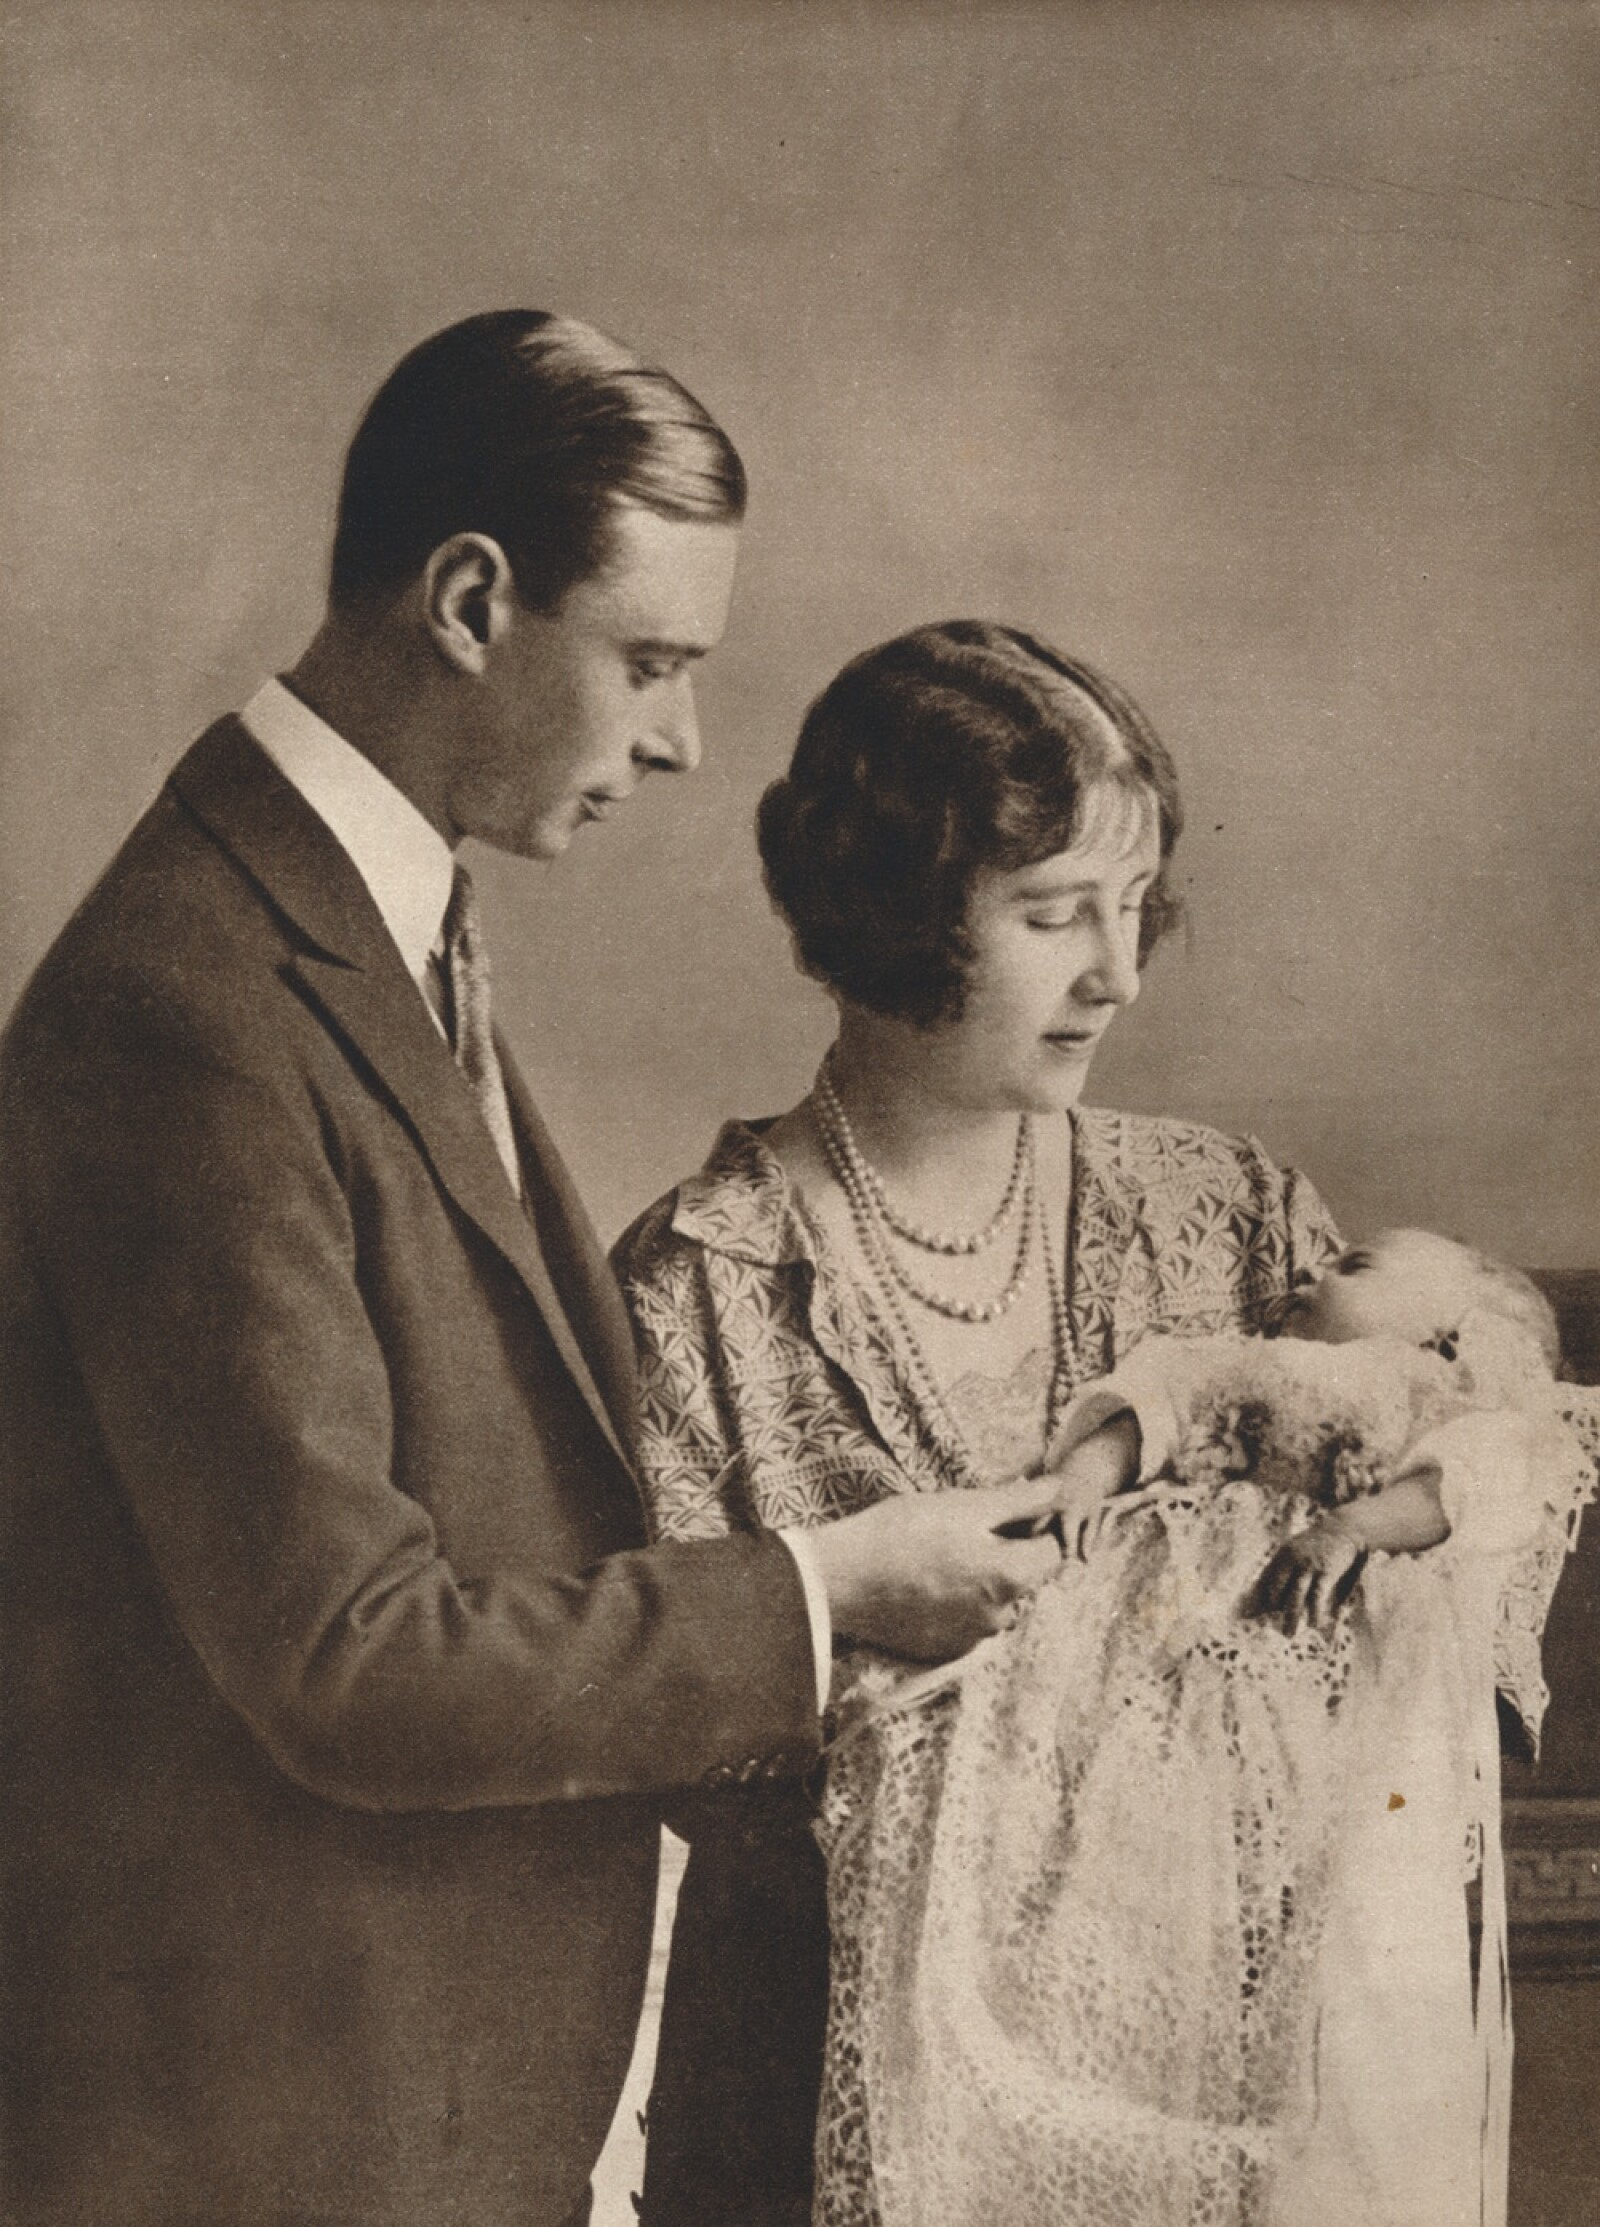 The Duke and Duchess of York at the christening of Princess Elizabeth', 1926